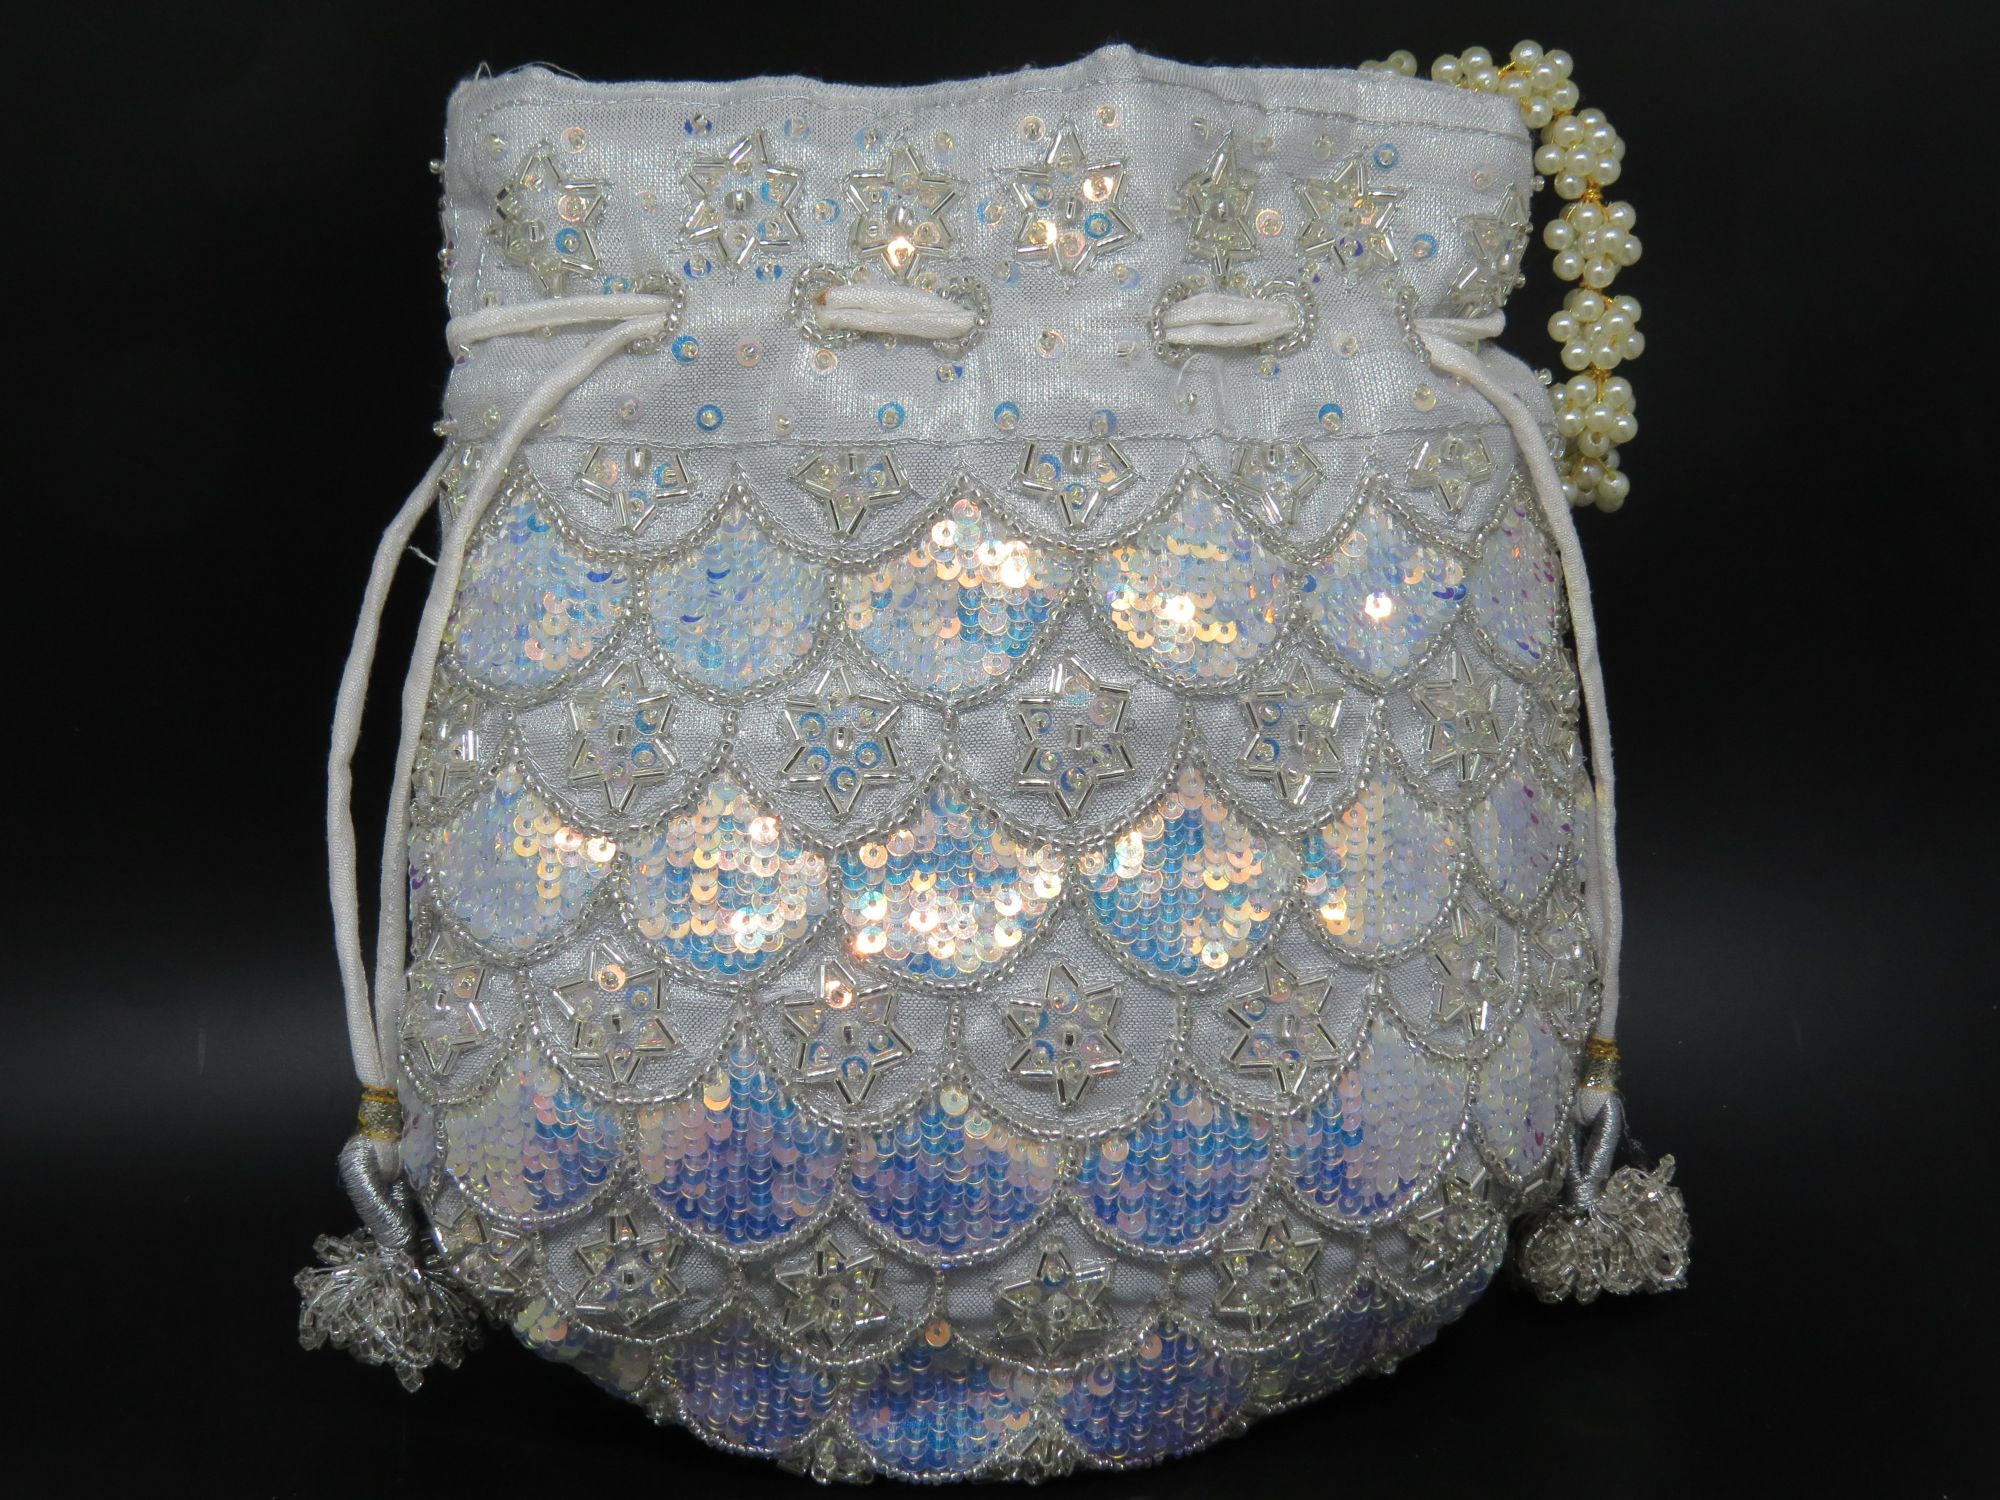 Silver embellished potli , handcrafted, handmade, designer luxury handbag, wedding Potli bag, party bag,